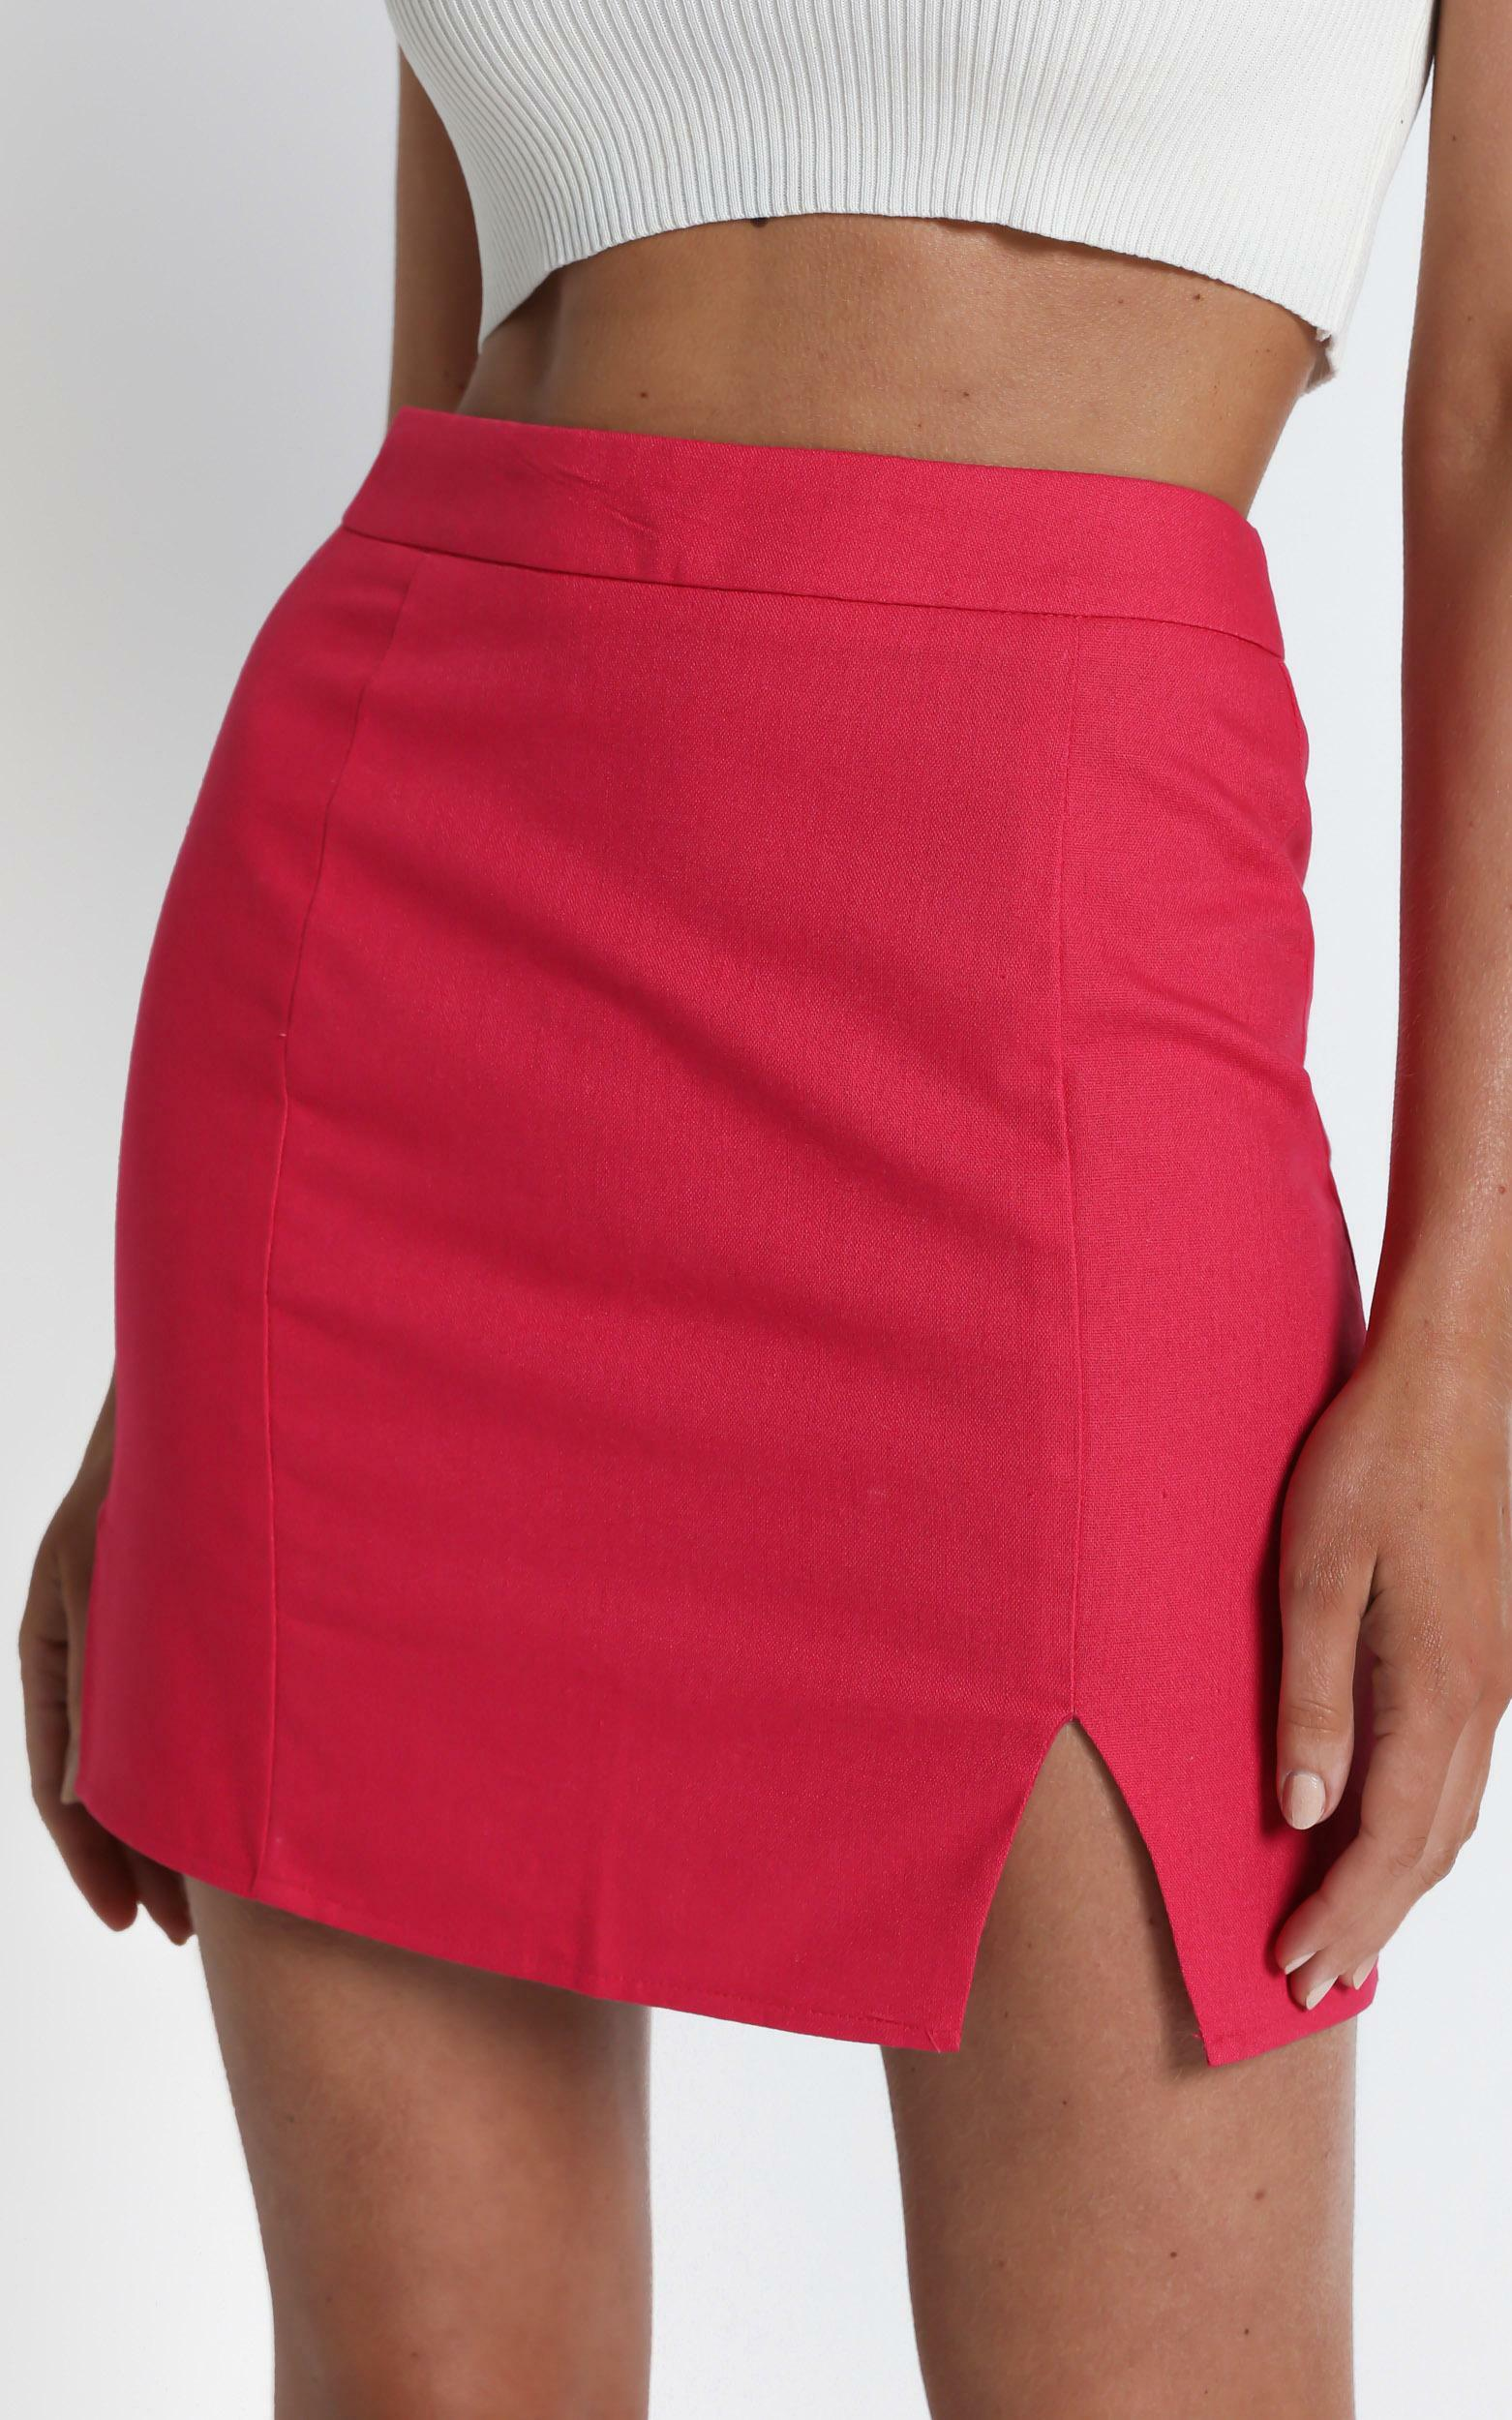 International Babe Skirt In hot pink linen look - 4 (XXS), PNK1, hi-res image number null